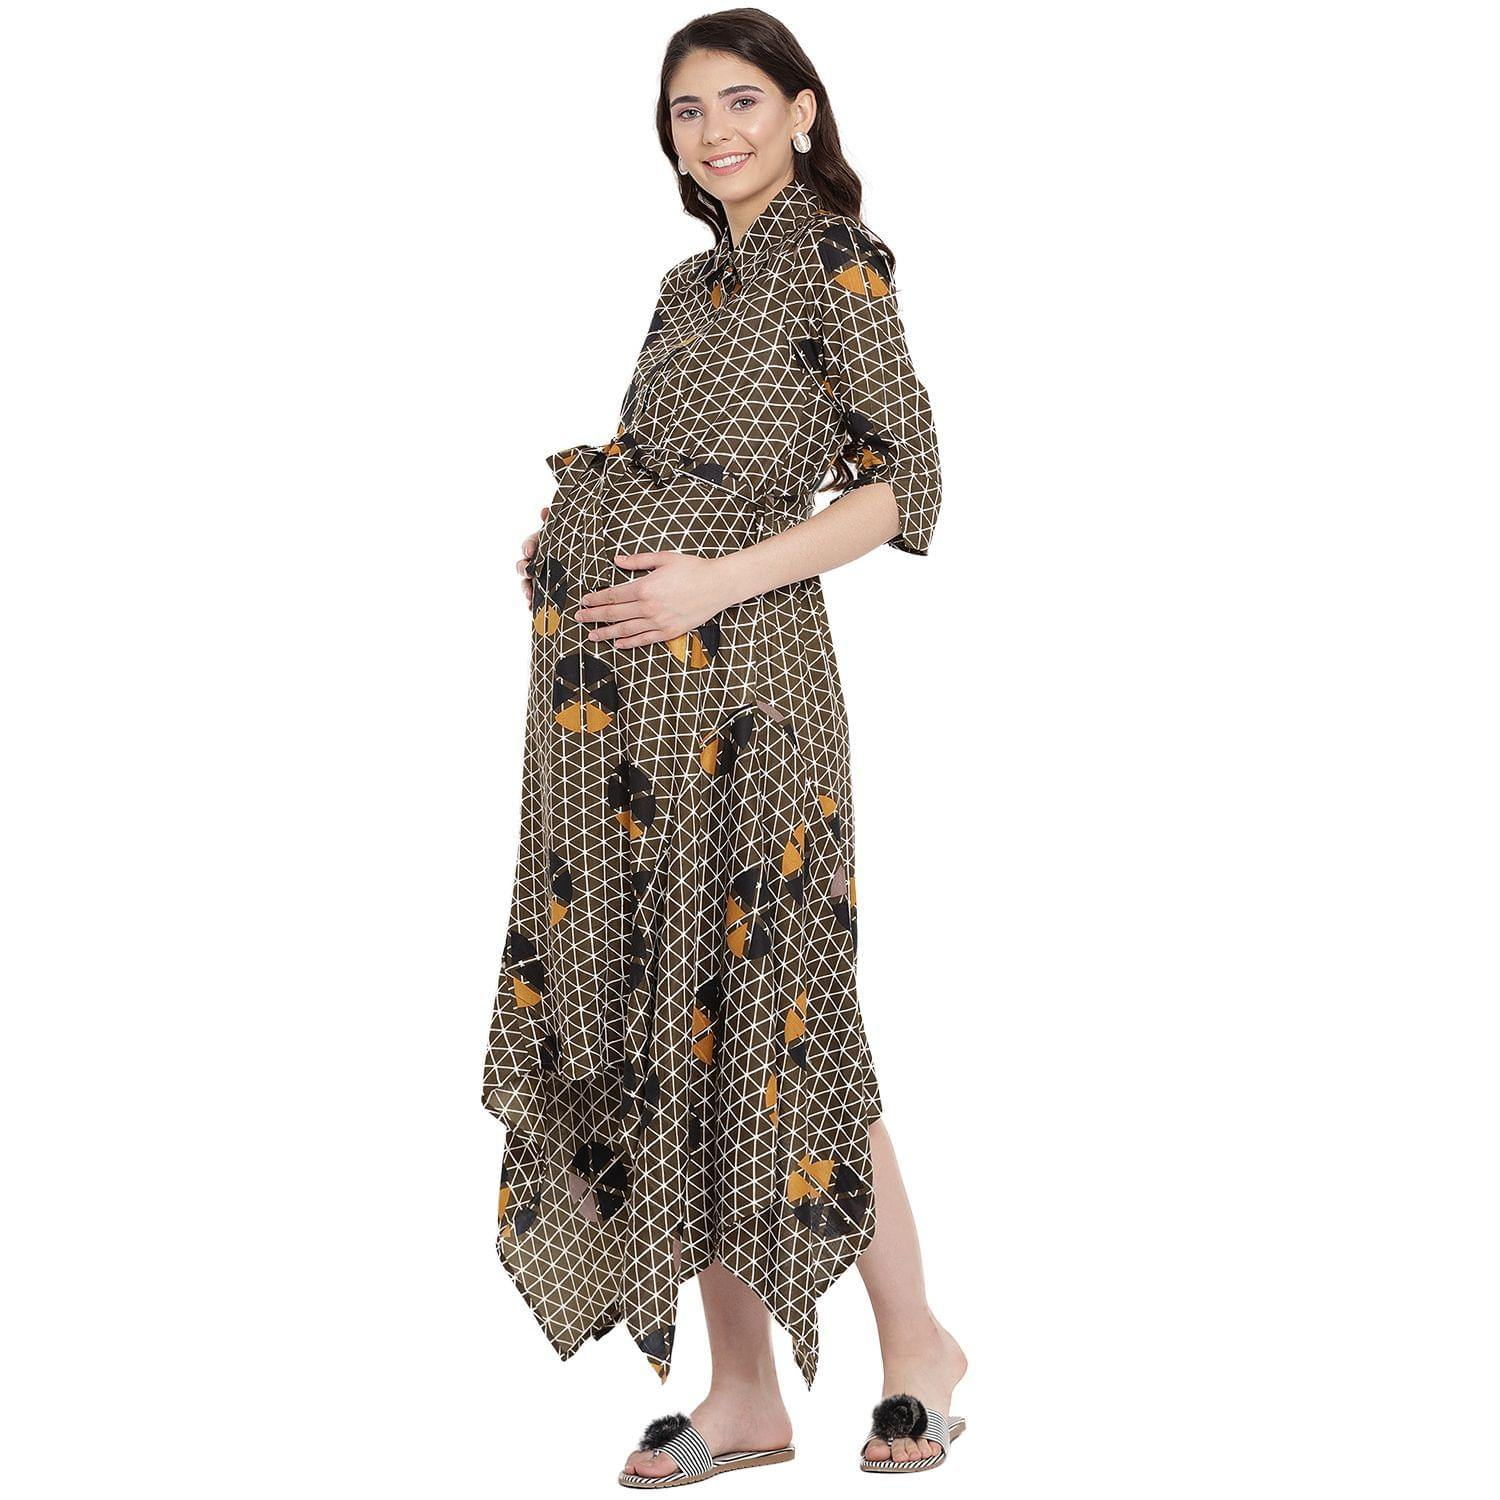 Olive Asymmetric Maternity Dress w/ Geometric Design, Made of Rayon- Mine4Nine